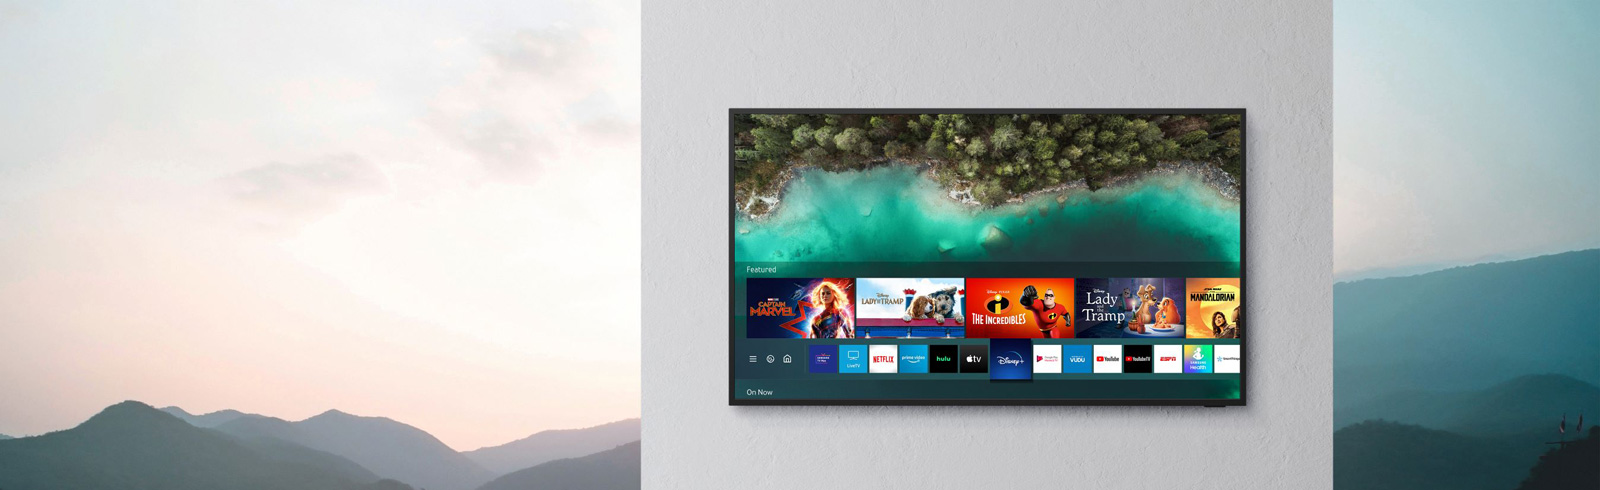 Samsung The Terrace QLED 4K TVs in the USA and Canada - prices and specifications